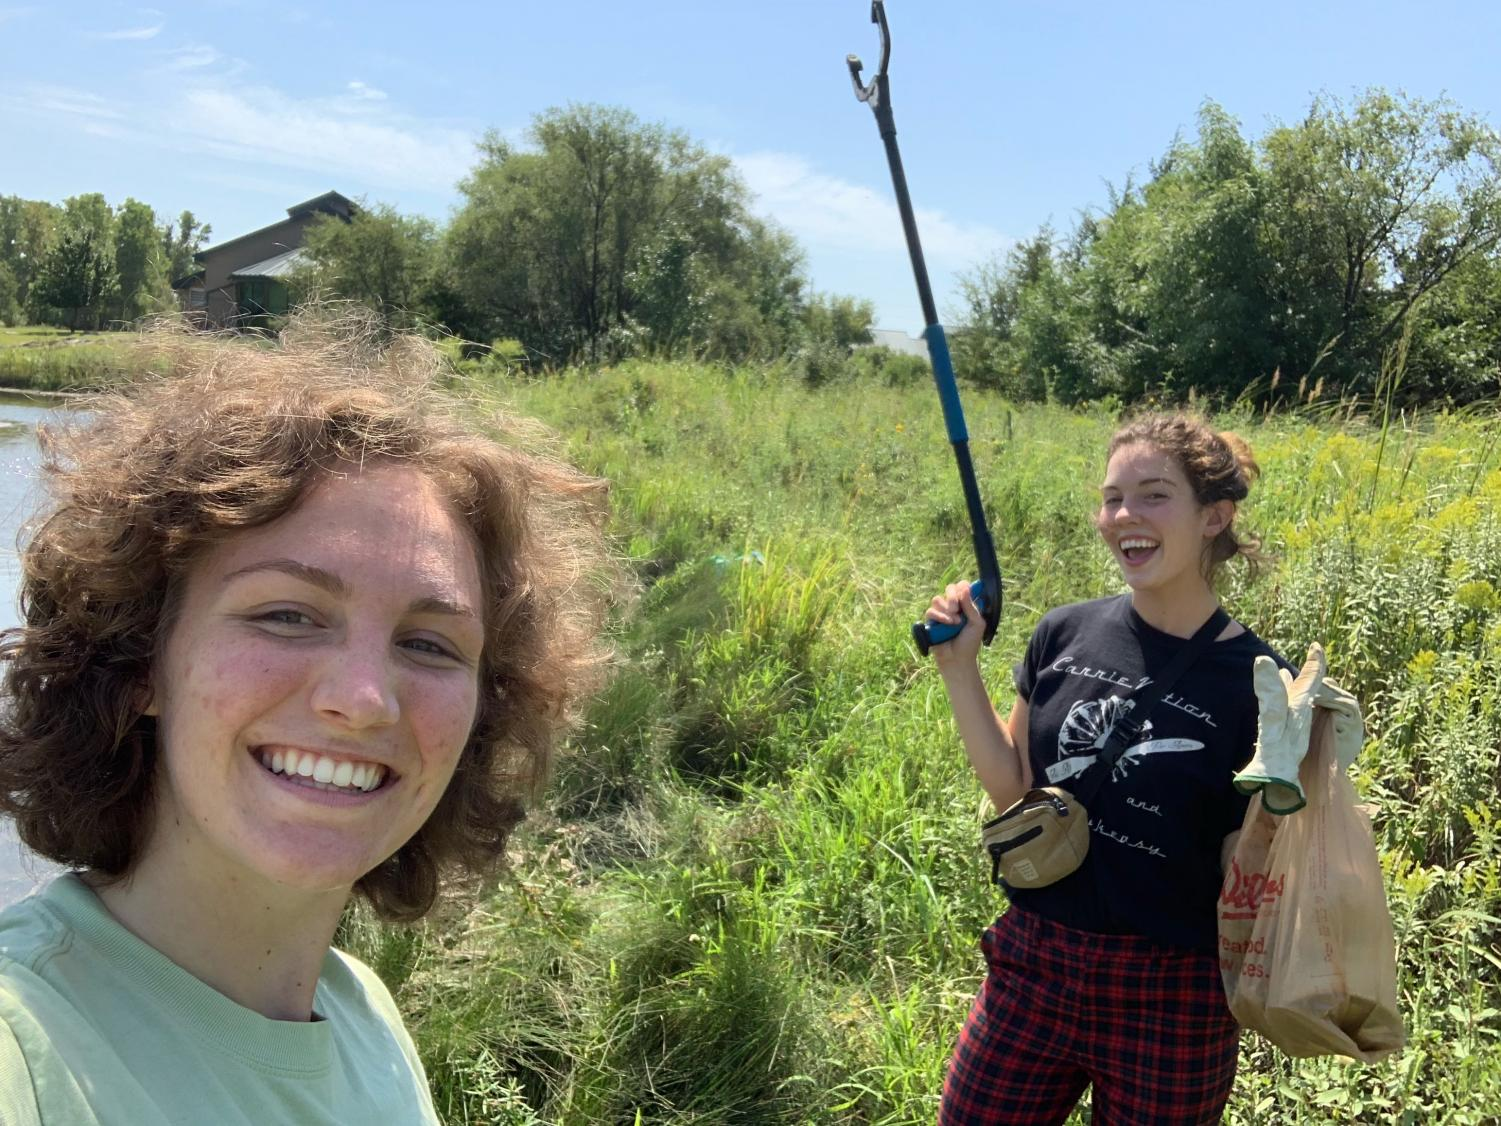 On Saturday, Sept. 7, Madi Laughlin and Morgan Cusick of Green Group cleaned up trash at Great Plains Nature Center.